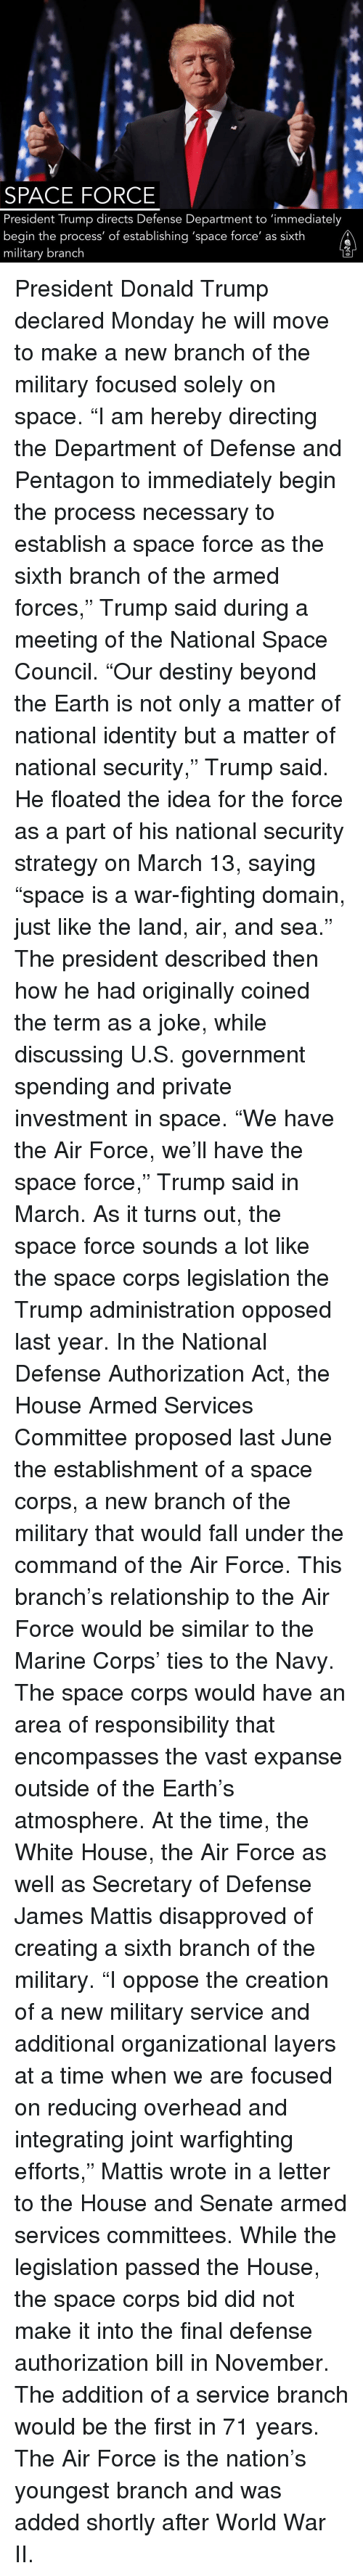 """Destiny, Donald Trump, and Fall: SPACE FORCE  President Trump directs Defense Department to 'immediately  begin the process' of establishing 'space force' as sixth  military branch President Donald Trump declared Monday he will move to make a new branch of the military focused solely on space. """"I am hereby directing the Department of Defense and Pentagon to immediately begin the process necessary to establish a space force as the sixth branch of the armed forces,"""" Trump said during a meeting of the National Space Council. """"Our destiny beyond the Earth is not only a matter of national identity but a matter of national security,"""" Trump said. He floated the idea for the force as a part of his national security strategy on March 13, saying """"space is a war-fighting domain, just like the land, air, and sea."""" The president described then how he had originally coined the term as a joke, while discussing U.S. government spending and private investment in space. """"We have the Air Force, we'll have the space force,"""" Trump said in March. As it turns out, the space force sounds a lot like the space corps legislation the Trump administration opposed last year. In the National Defense Authorization Act, the House Armed Services Committee proposed last June the establishment of a space corps, a new branch of the military that would fall under the command of the Air Force. This branch's relationship to the Air Force would be similar to the Marine Corps' ties to the Navy. The space corps would have an area of responsibility that encompasses the vast expanse outside of the Earth's atmosphere. At the time, the White House, the Air Force as well as Secretary of Defense James Mattis disapproved of creating a sixth branch of the military. """"I oppose the creation of a new military service and additional organizational layers at a time when we are focused on reducing overhead and integrating joint warfighting efforts,"""" Mattis wrote in a letter to the House and Senate armed services committees"""